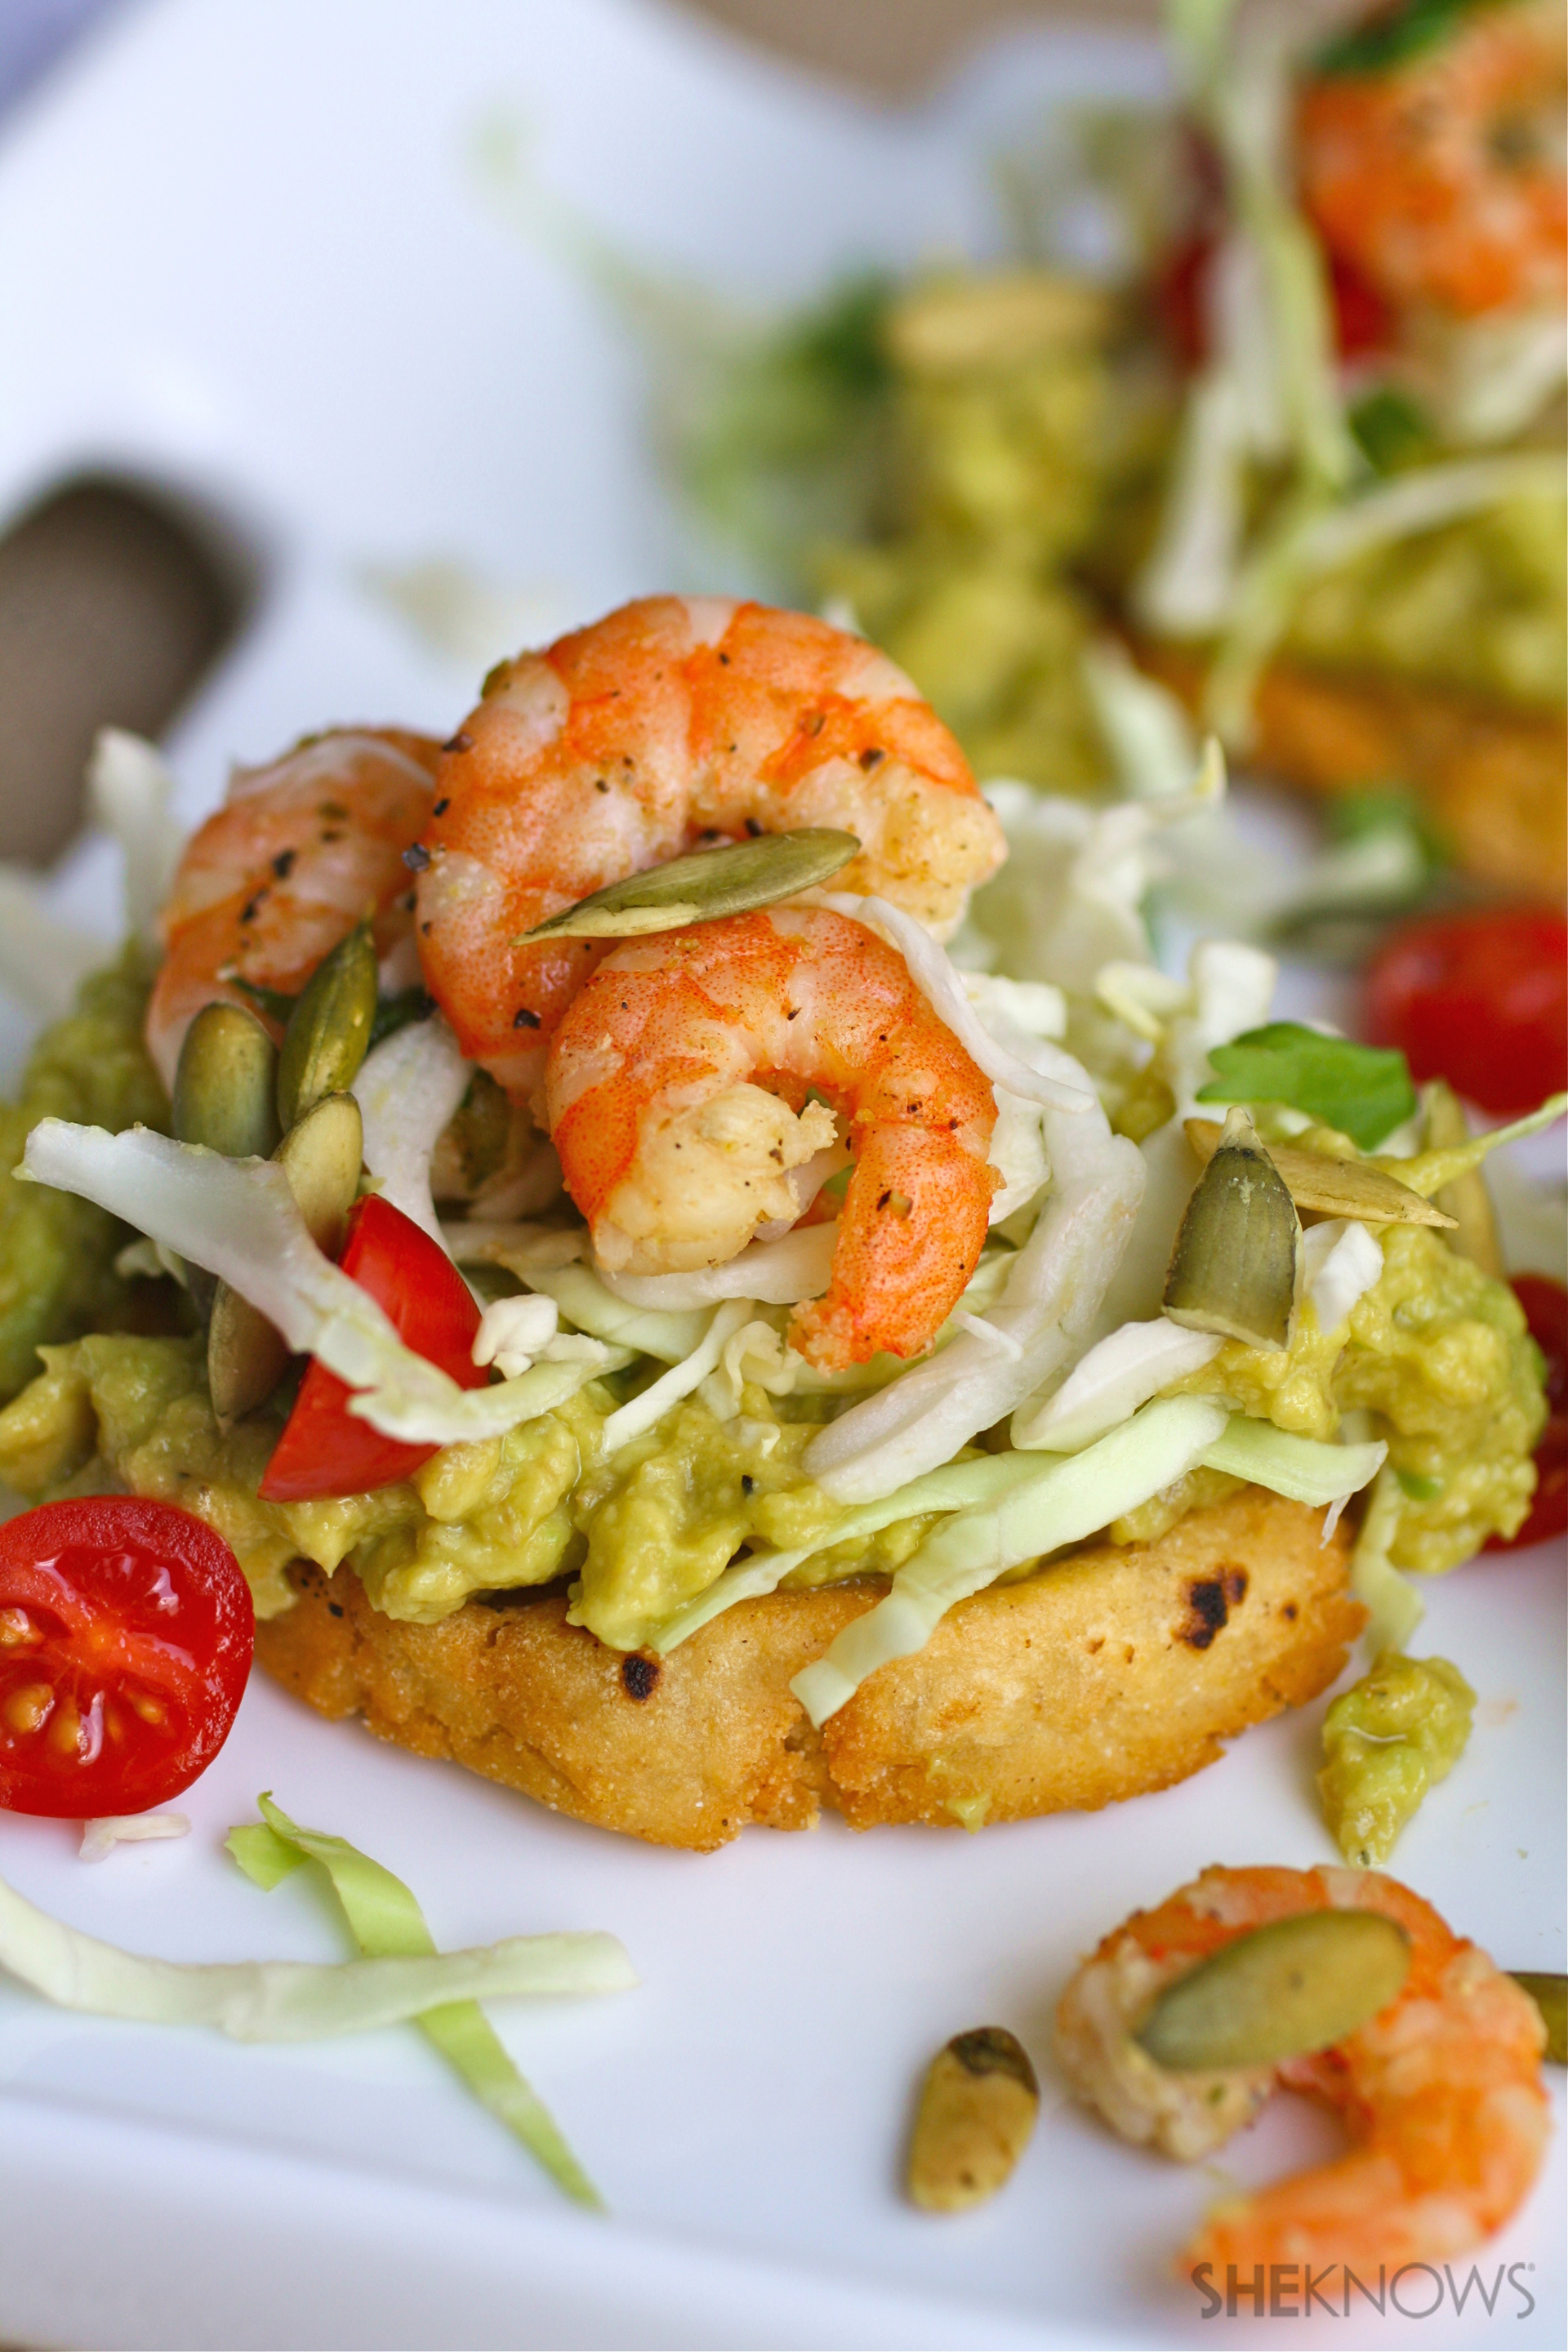 Sopes: Like open-faced sandwiches, but way better, because hello, they're deep-fried